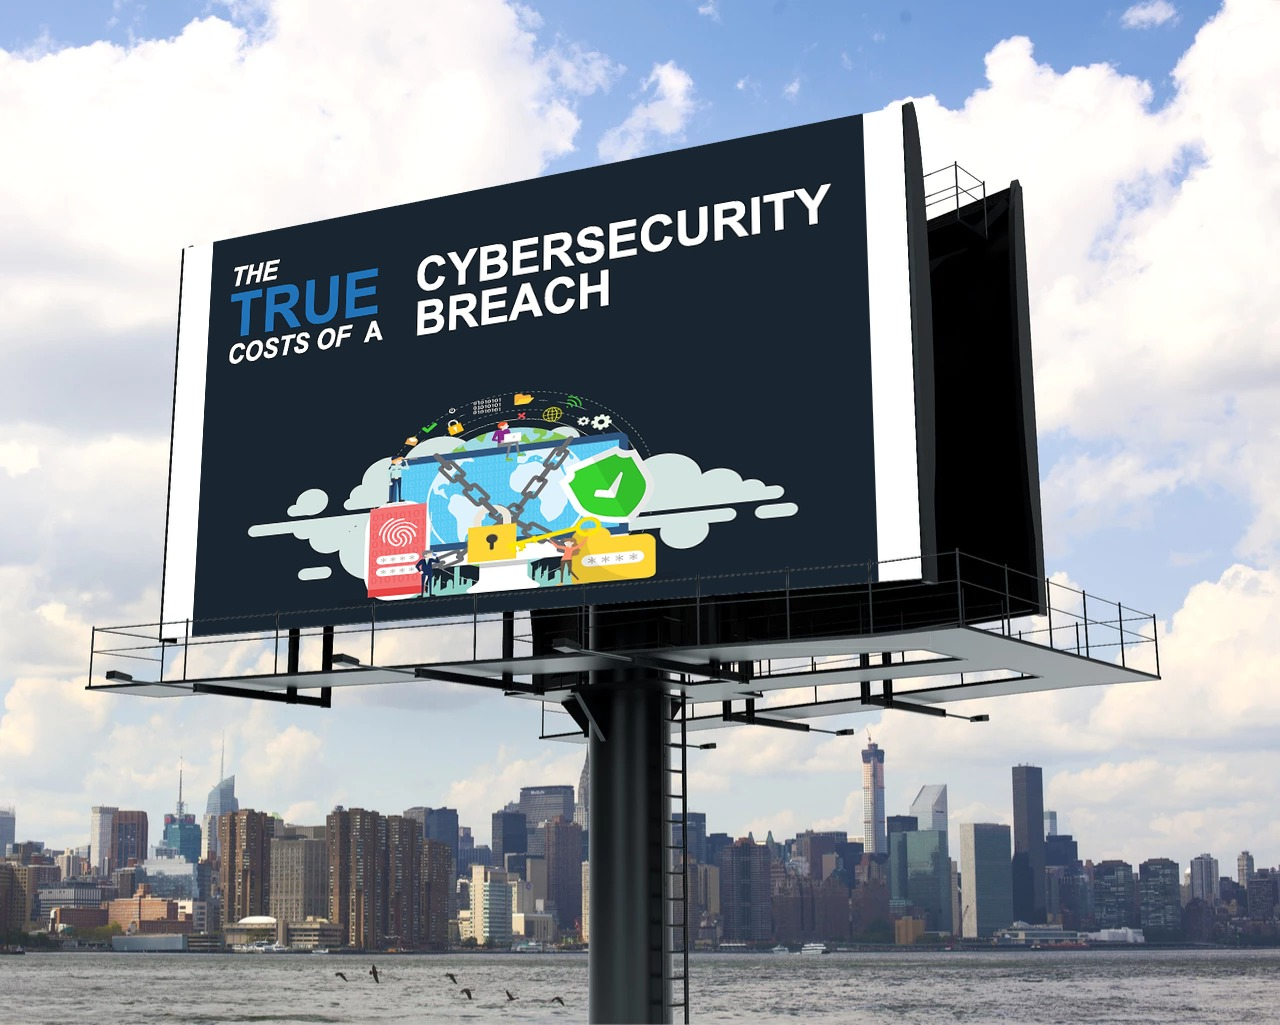 The true costs of a cybersecurity breach 24By7Security